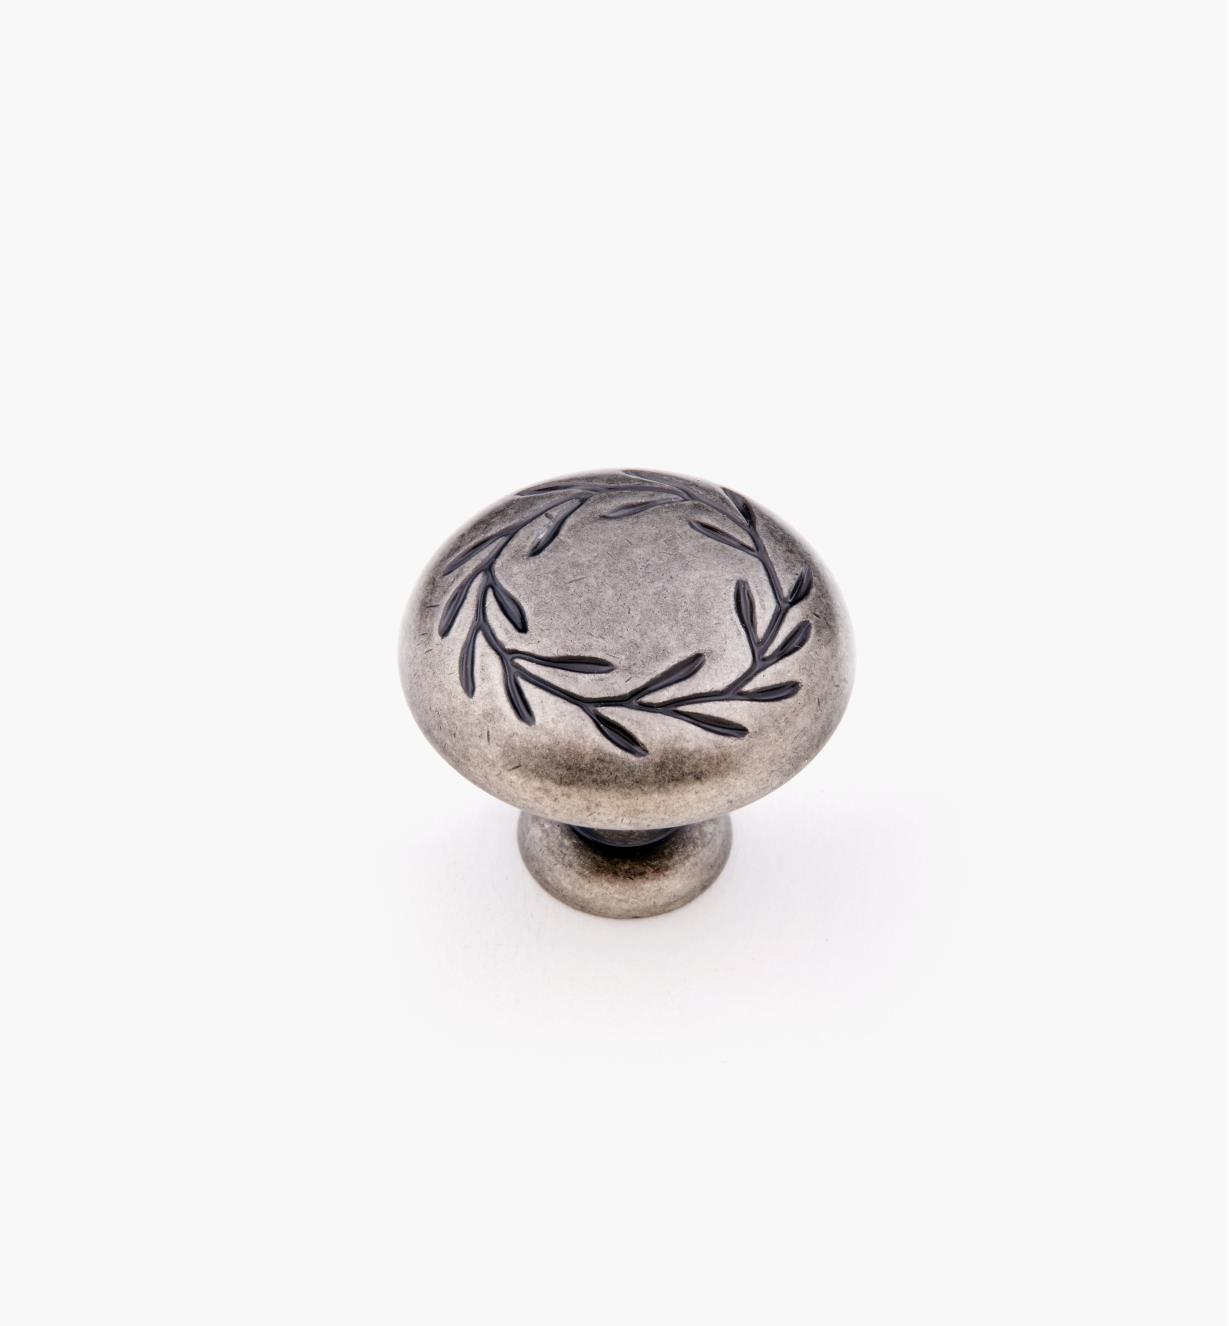 "02A0614 - 1 1/4"" Weathered Nickel Leaf Knob"